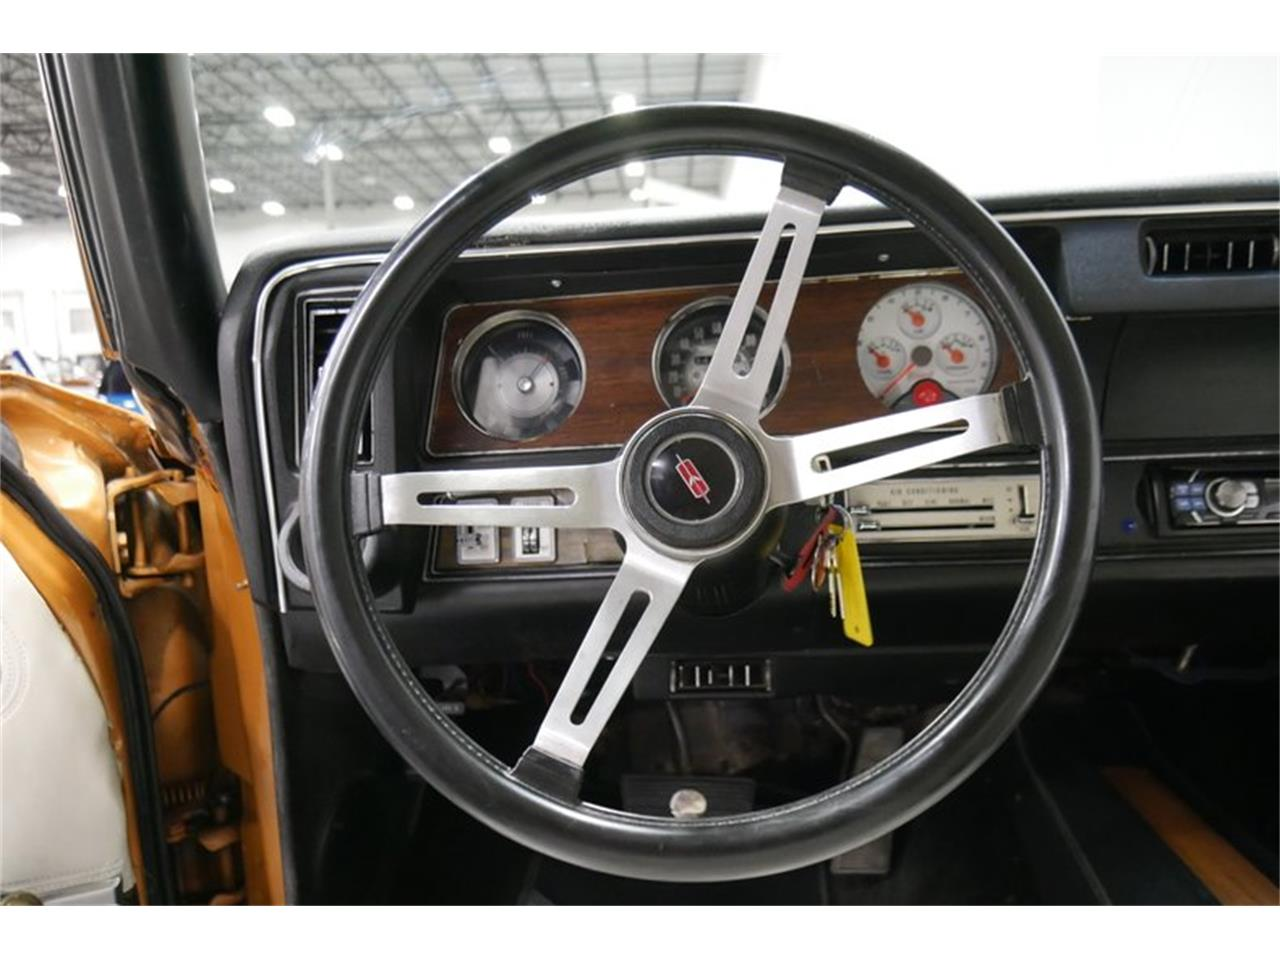 Large Picture of Classic 1972 Oldsmobile Cutlass located in Tennessee - $24,995.00 - QIVH